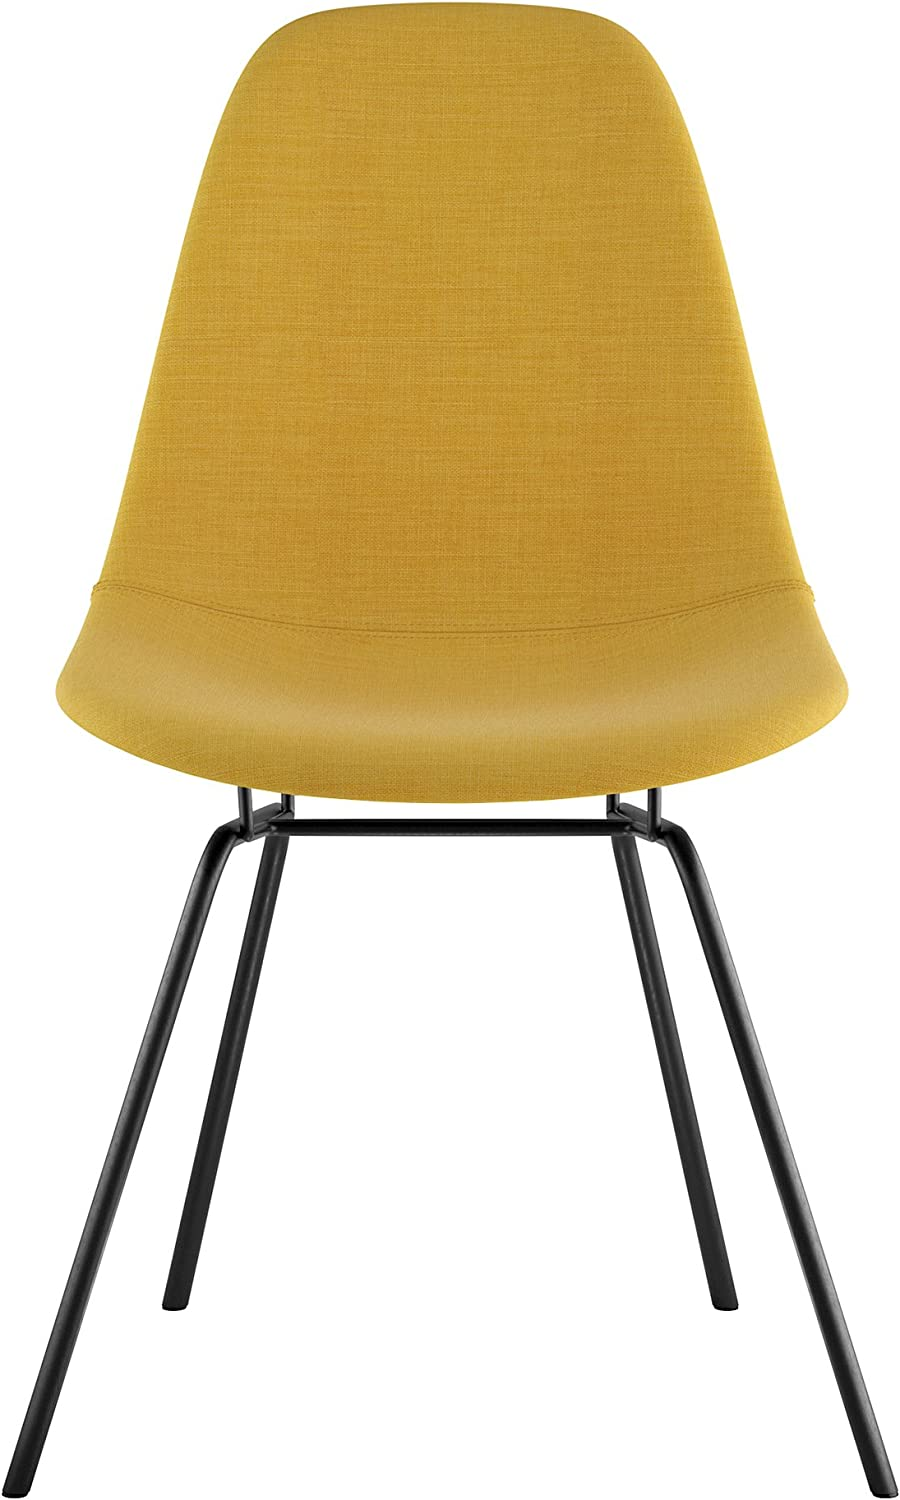 NyeKoncept 331003CL3 Mid Century Classroom Side Chair, Papaya Yellow